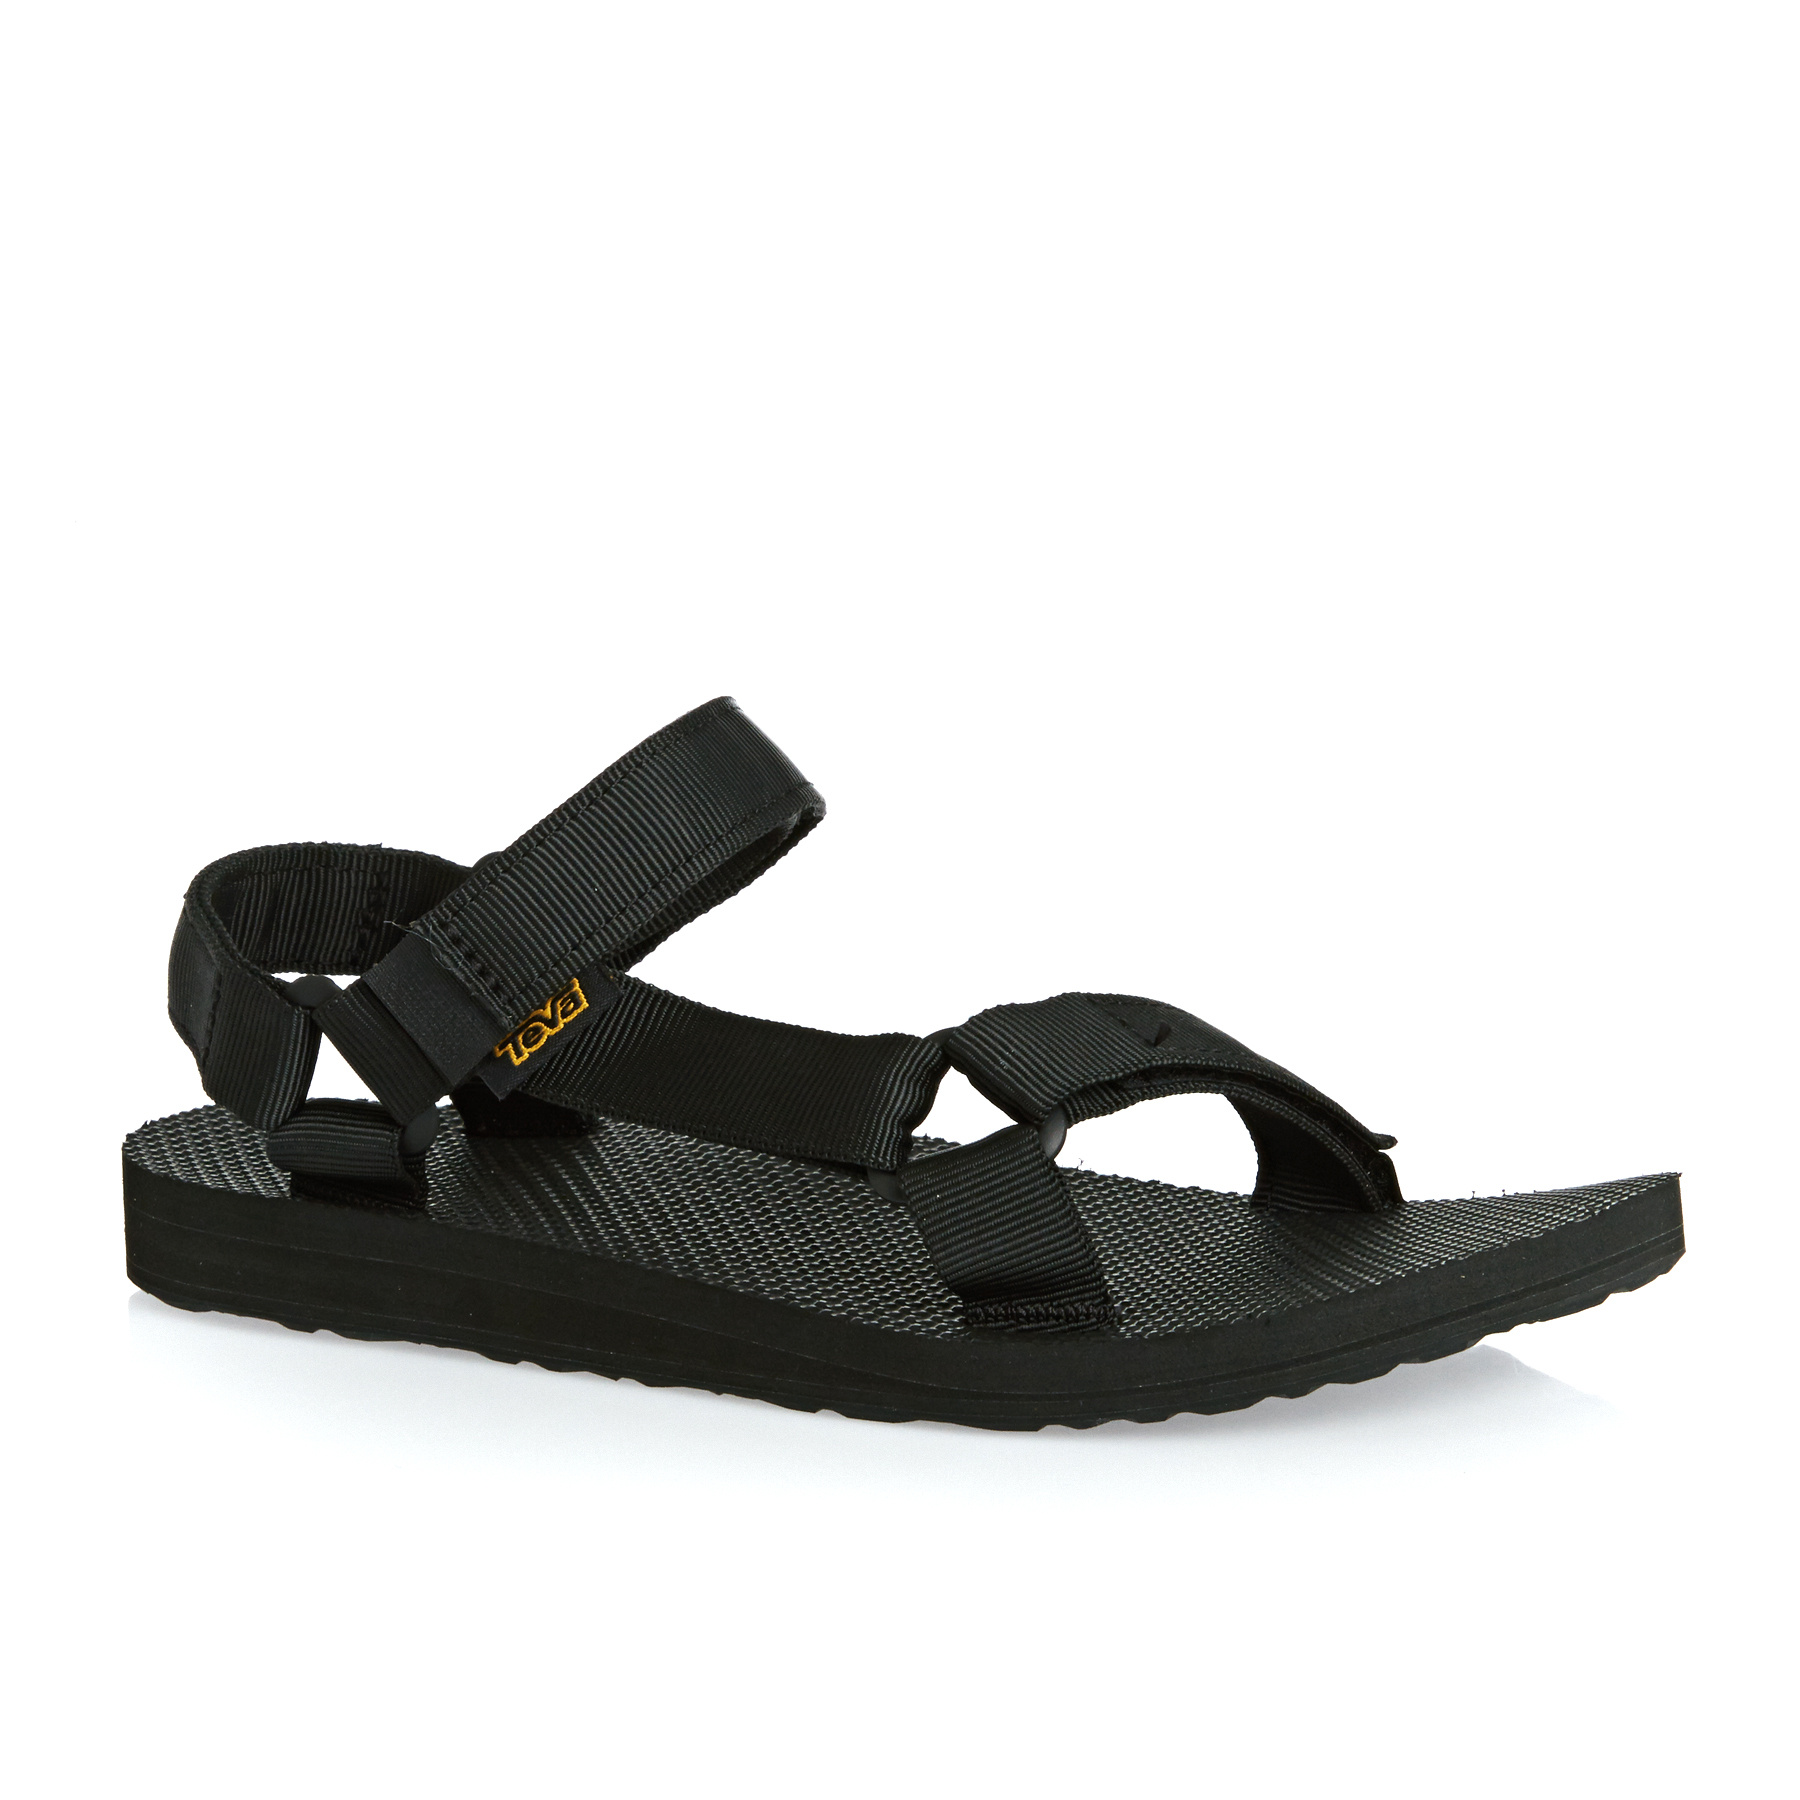 Teva Original Universal Damen Sandalen Black | Country Attire